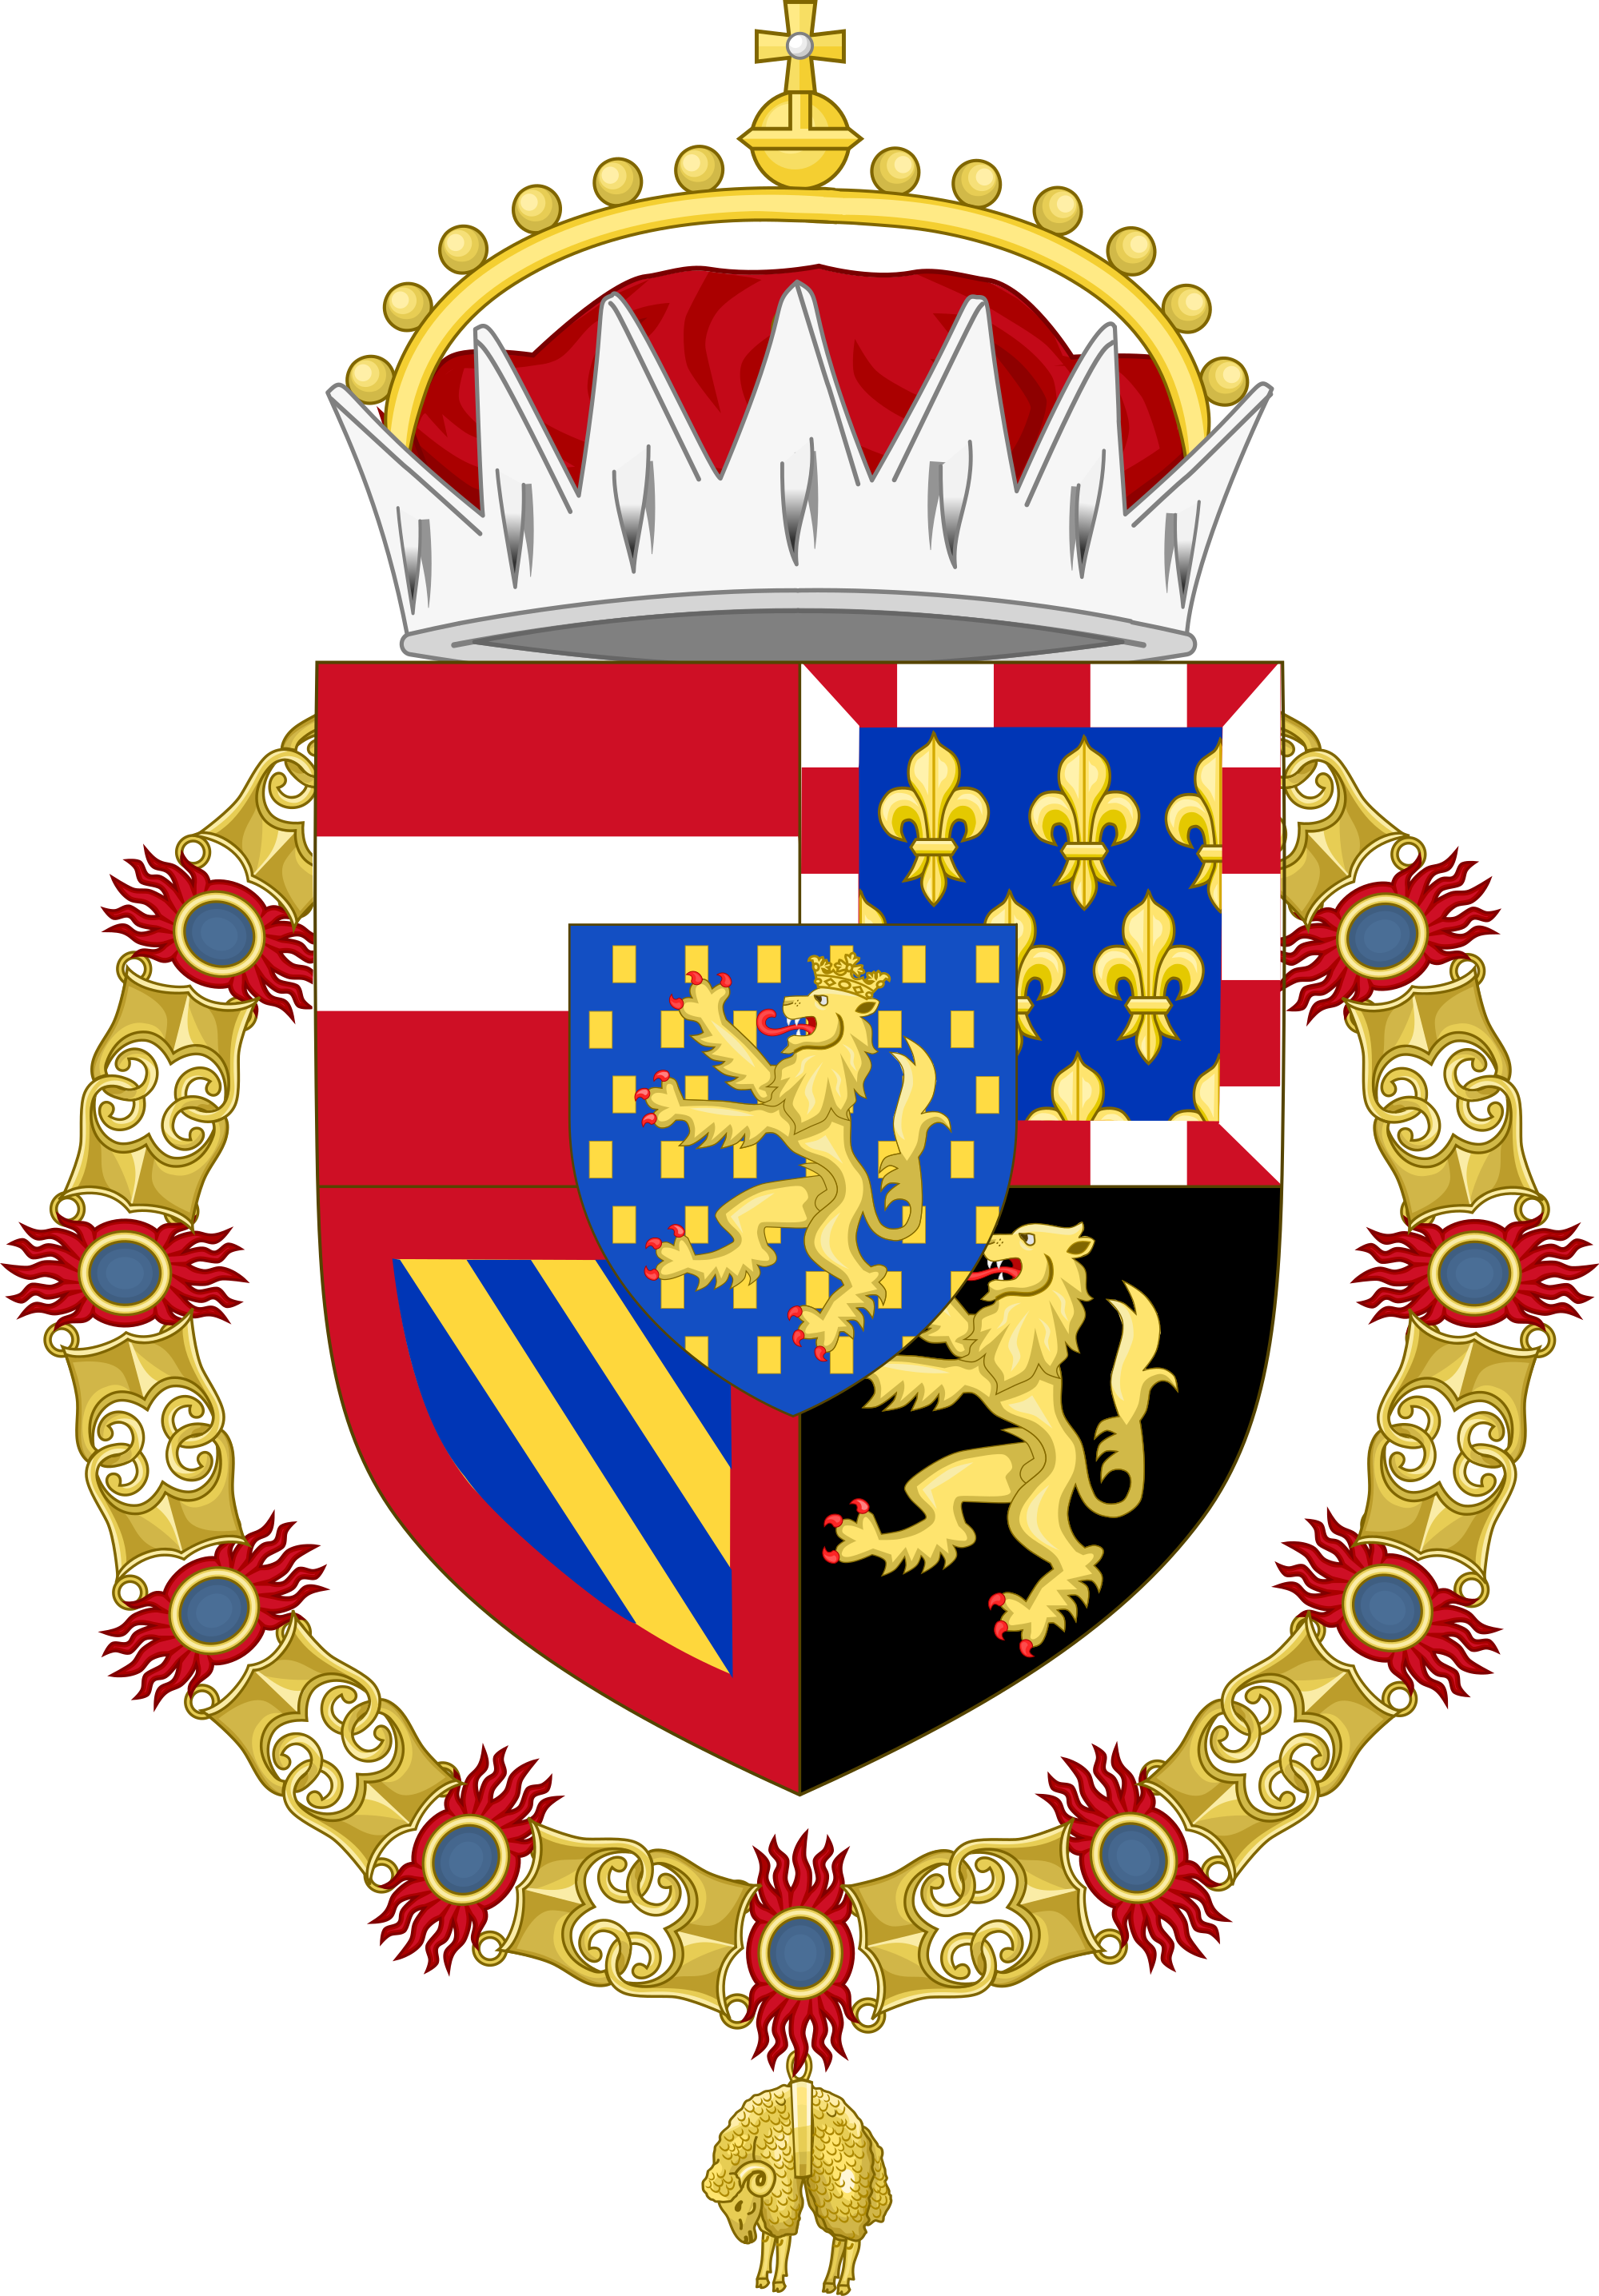 File:Coat of Arms of Philip VI Count Palatine of Burgundy.svg.